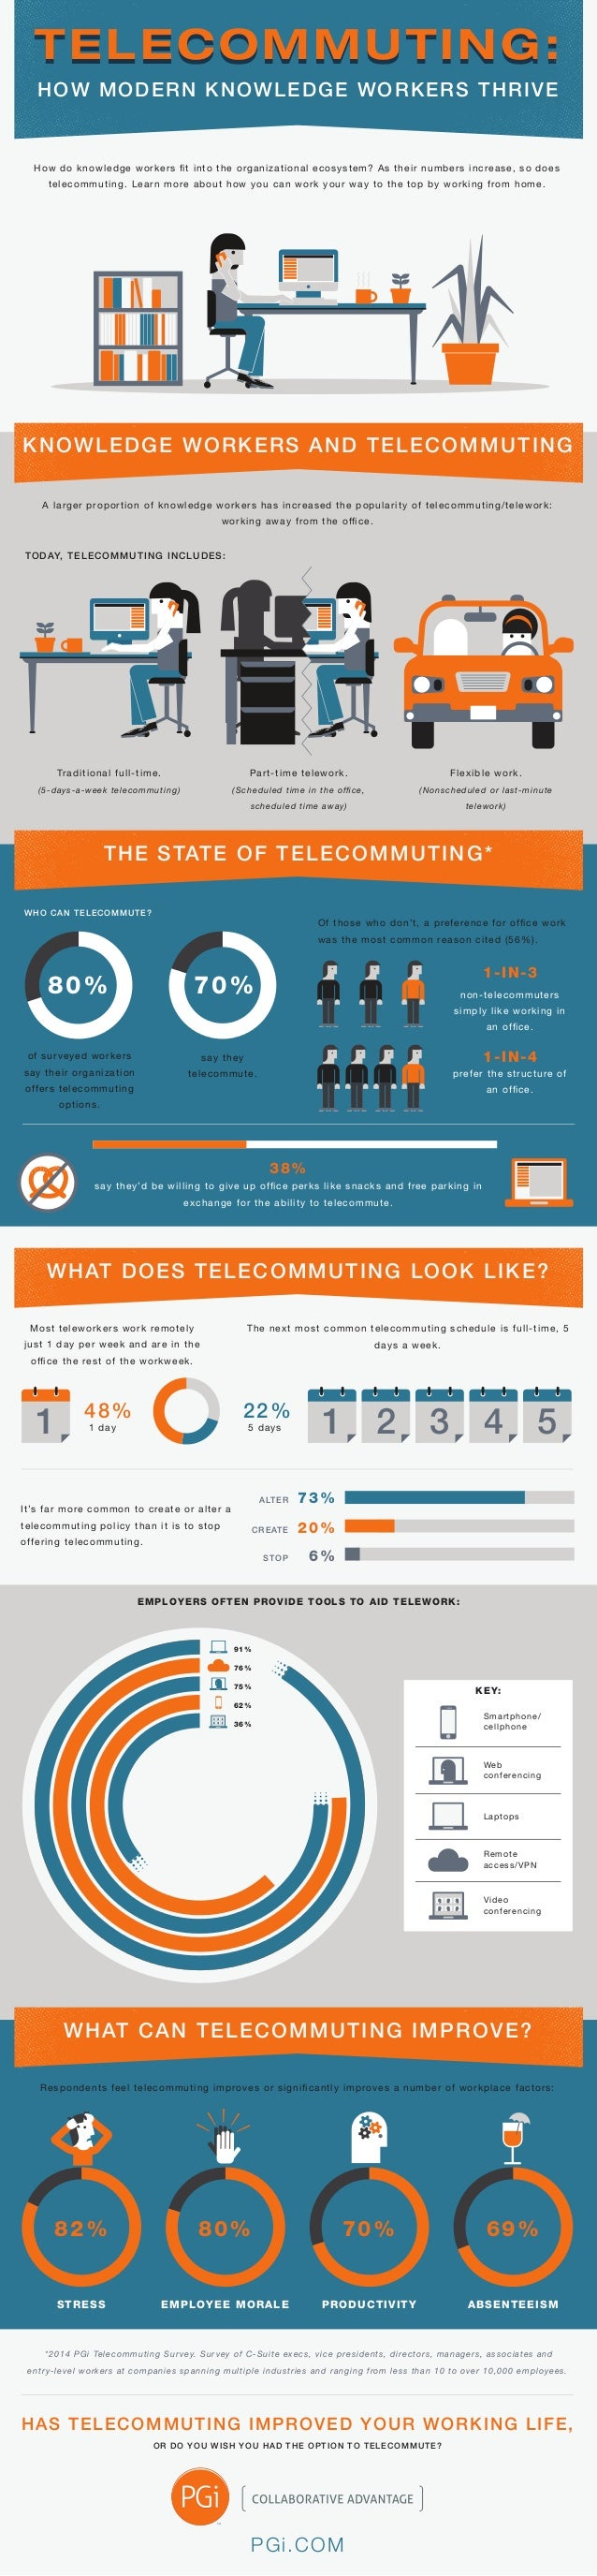 HOW MODERN KNOWLEDGE WORKERS THRIVE TELECOMMUTING:TELECOMMUTING:TELECOMMUTING:TELECOMMUTING:TELECOMMUTING:TELECOMMUTING:TE...